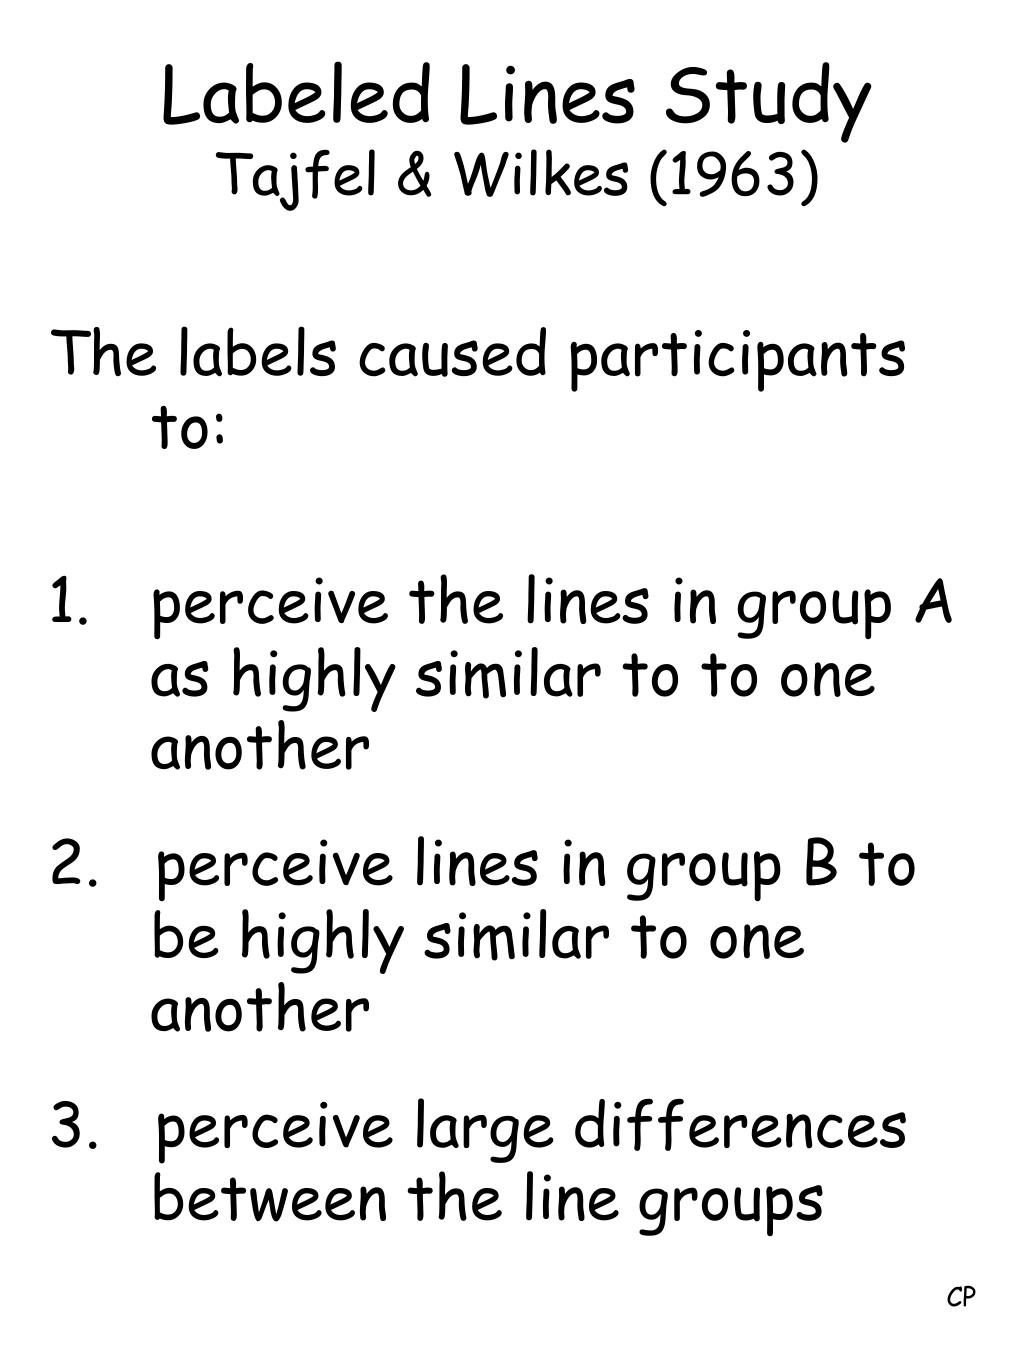 Labeled Lines Study